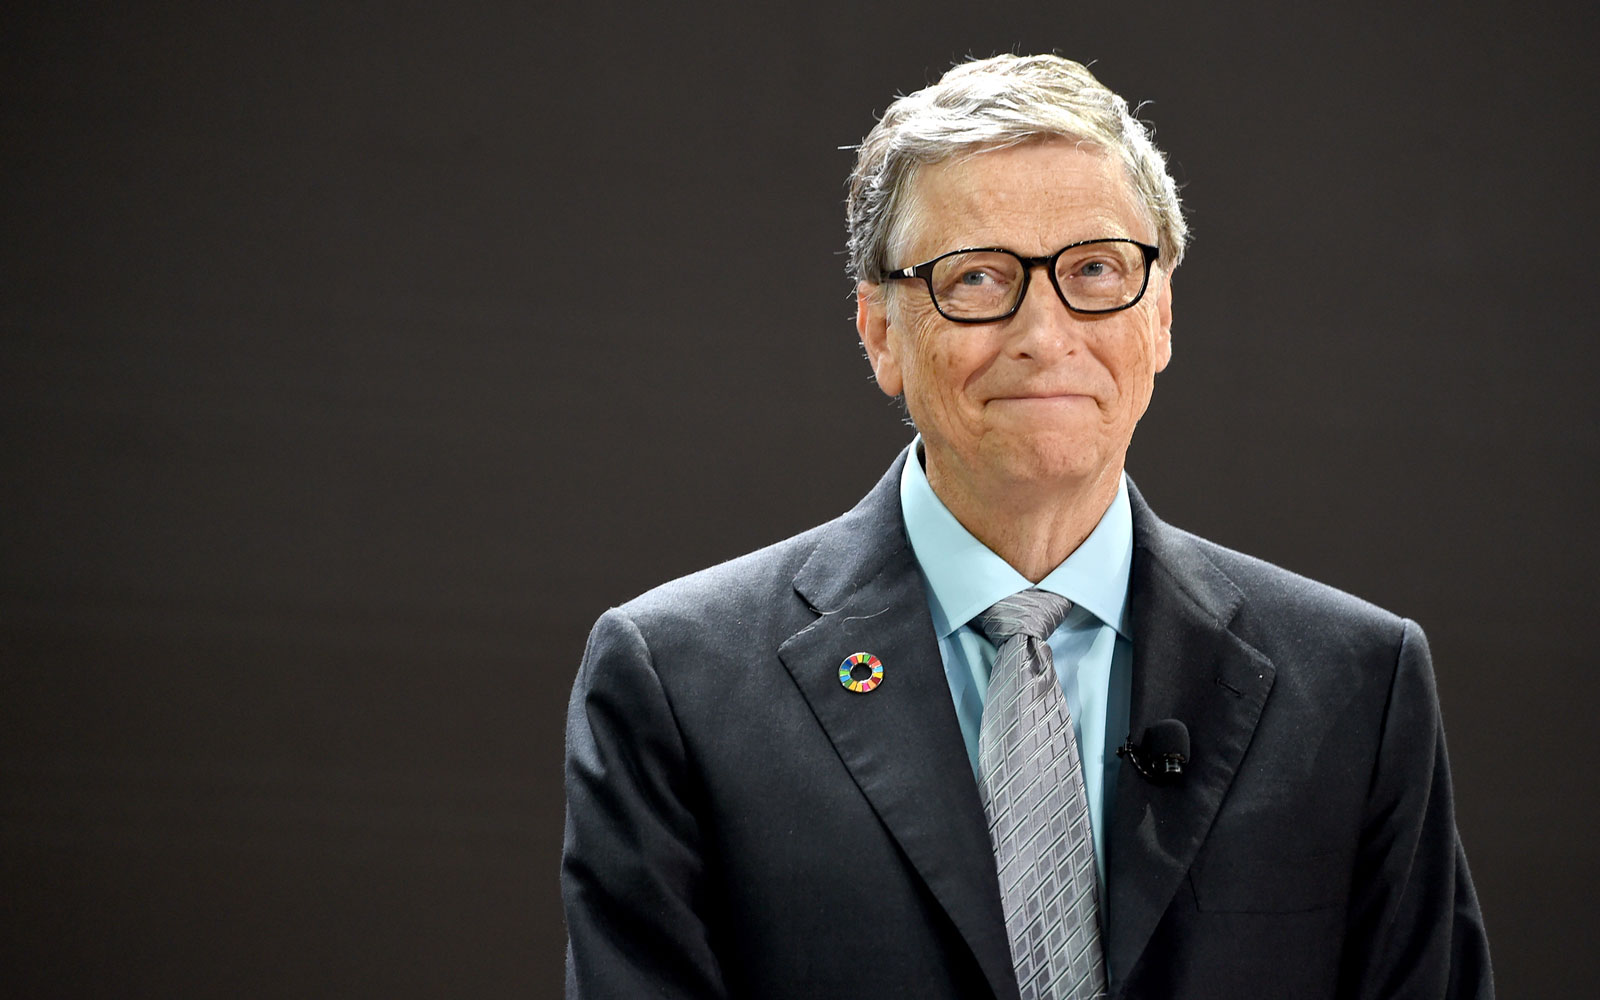 Bill Gates Wants to Build Smart City in Arizona